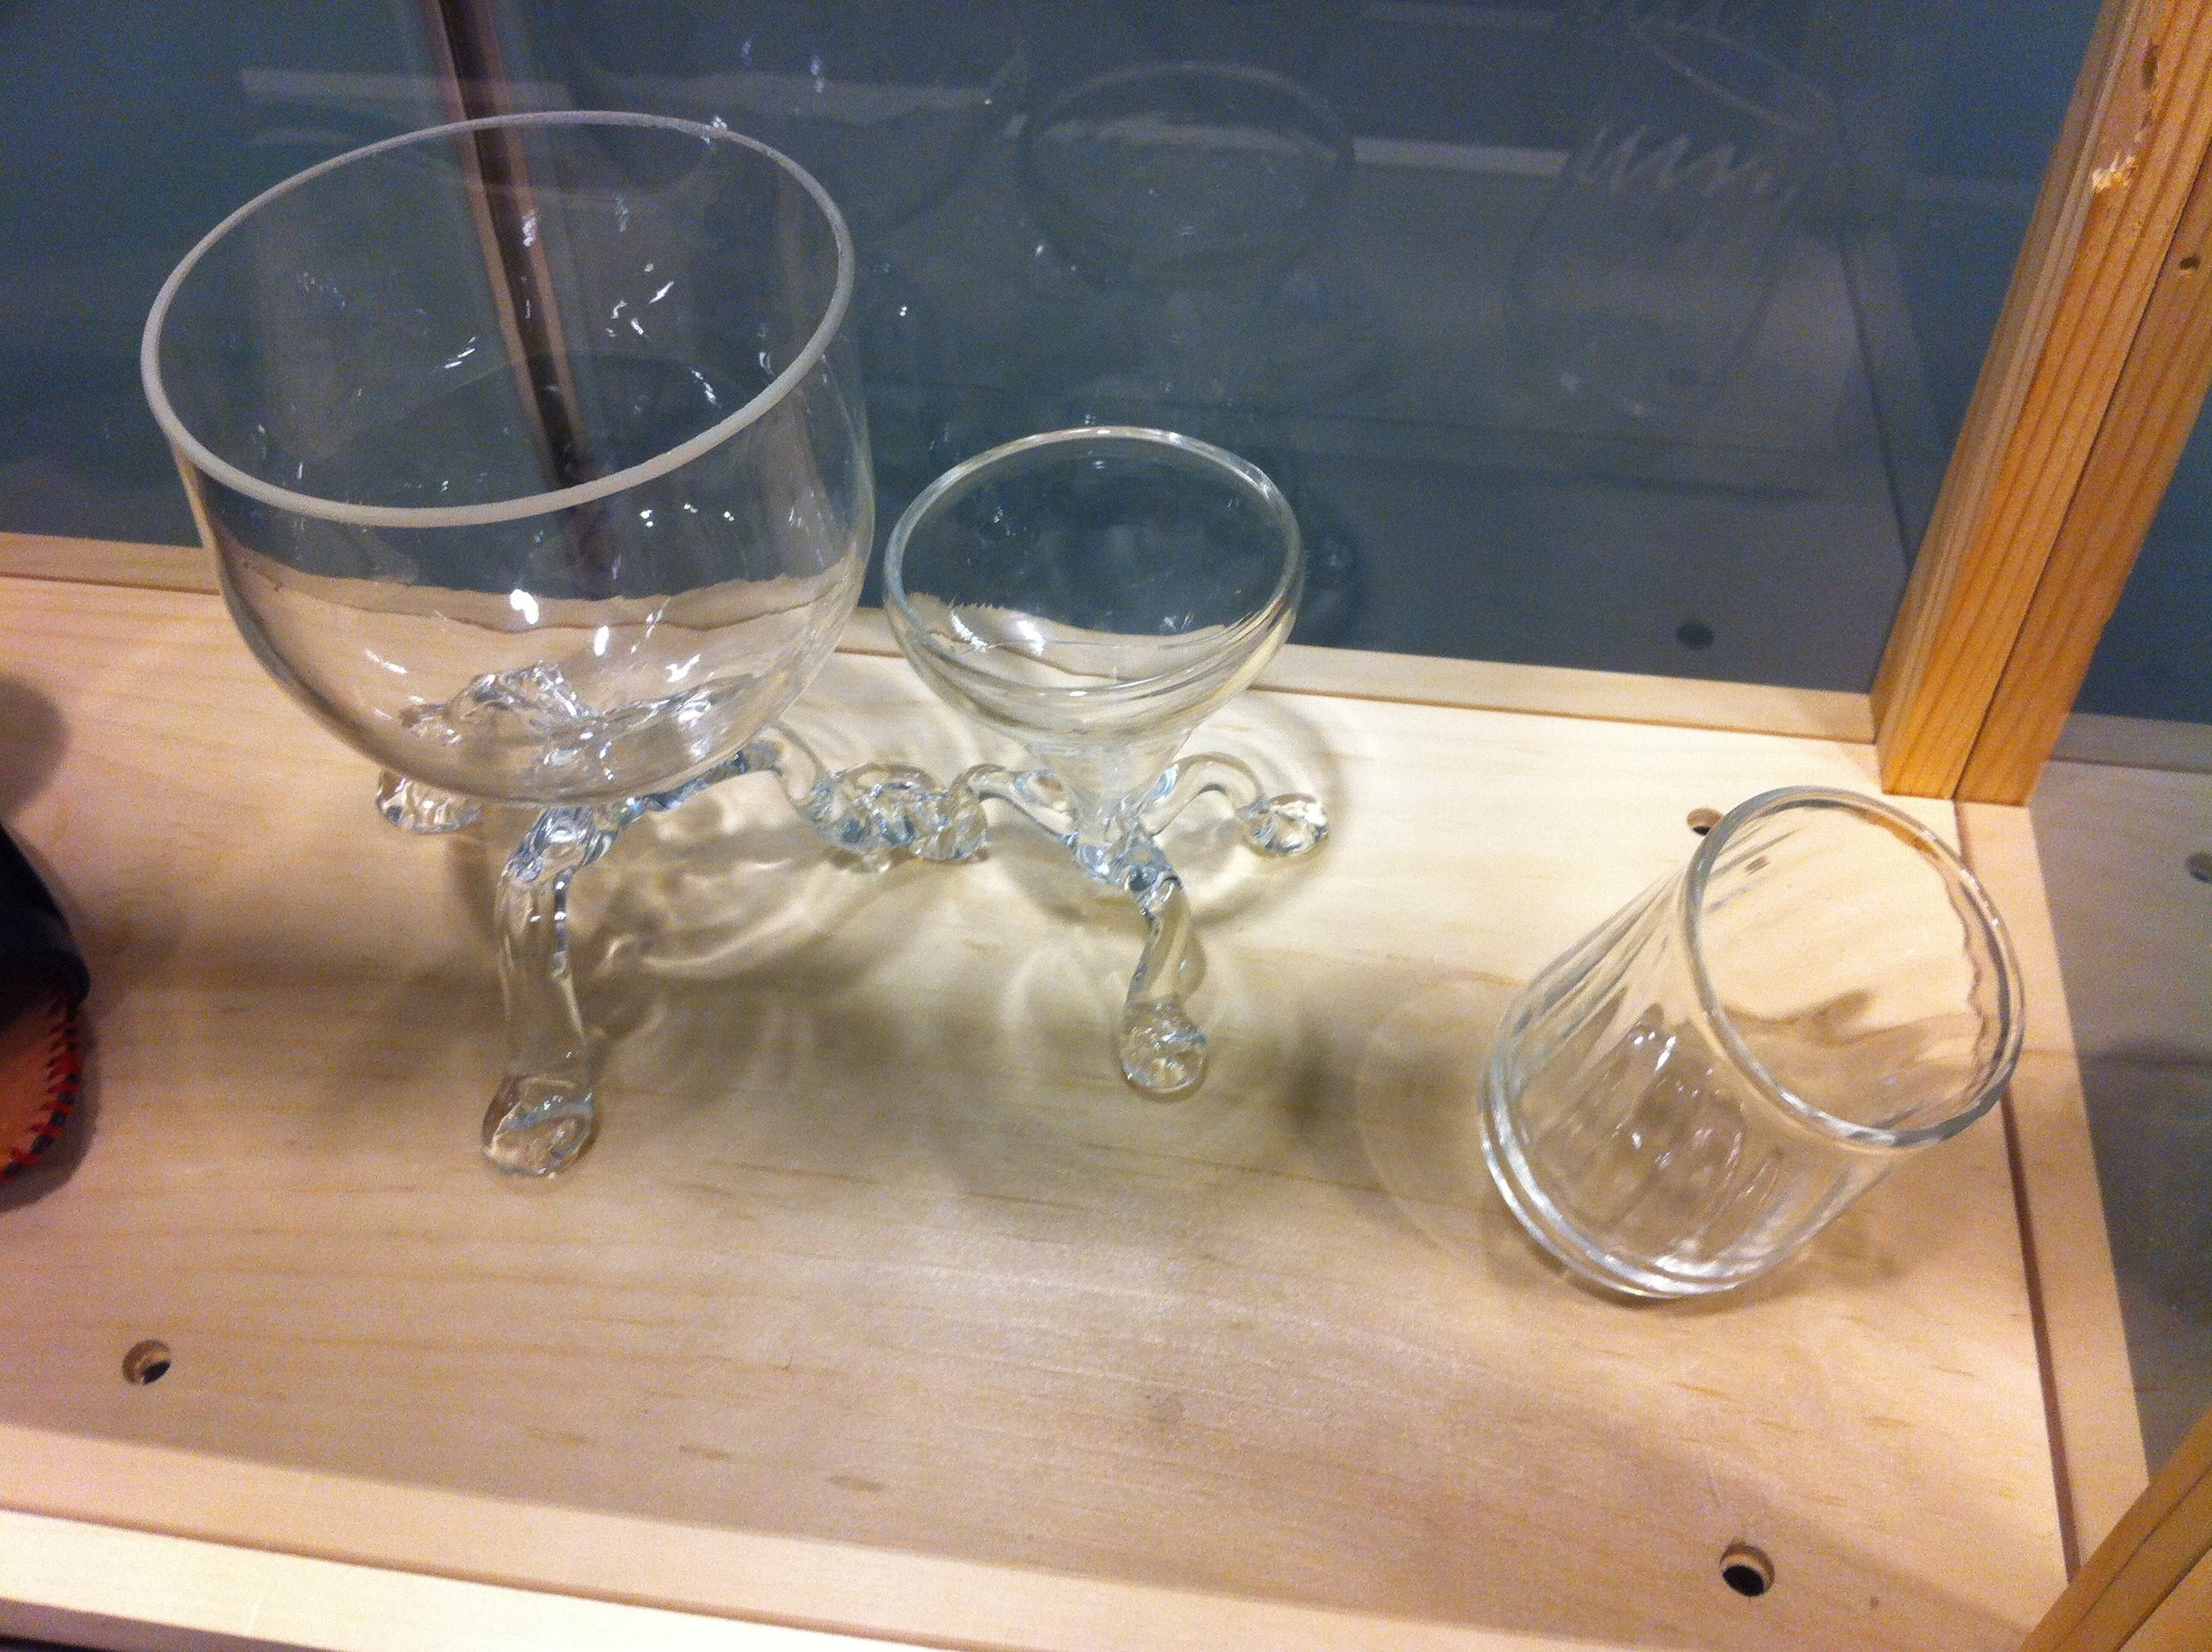 A three legged Goblet. A three legged martini glass. A glass with a curved base to discourage putting it down.